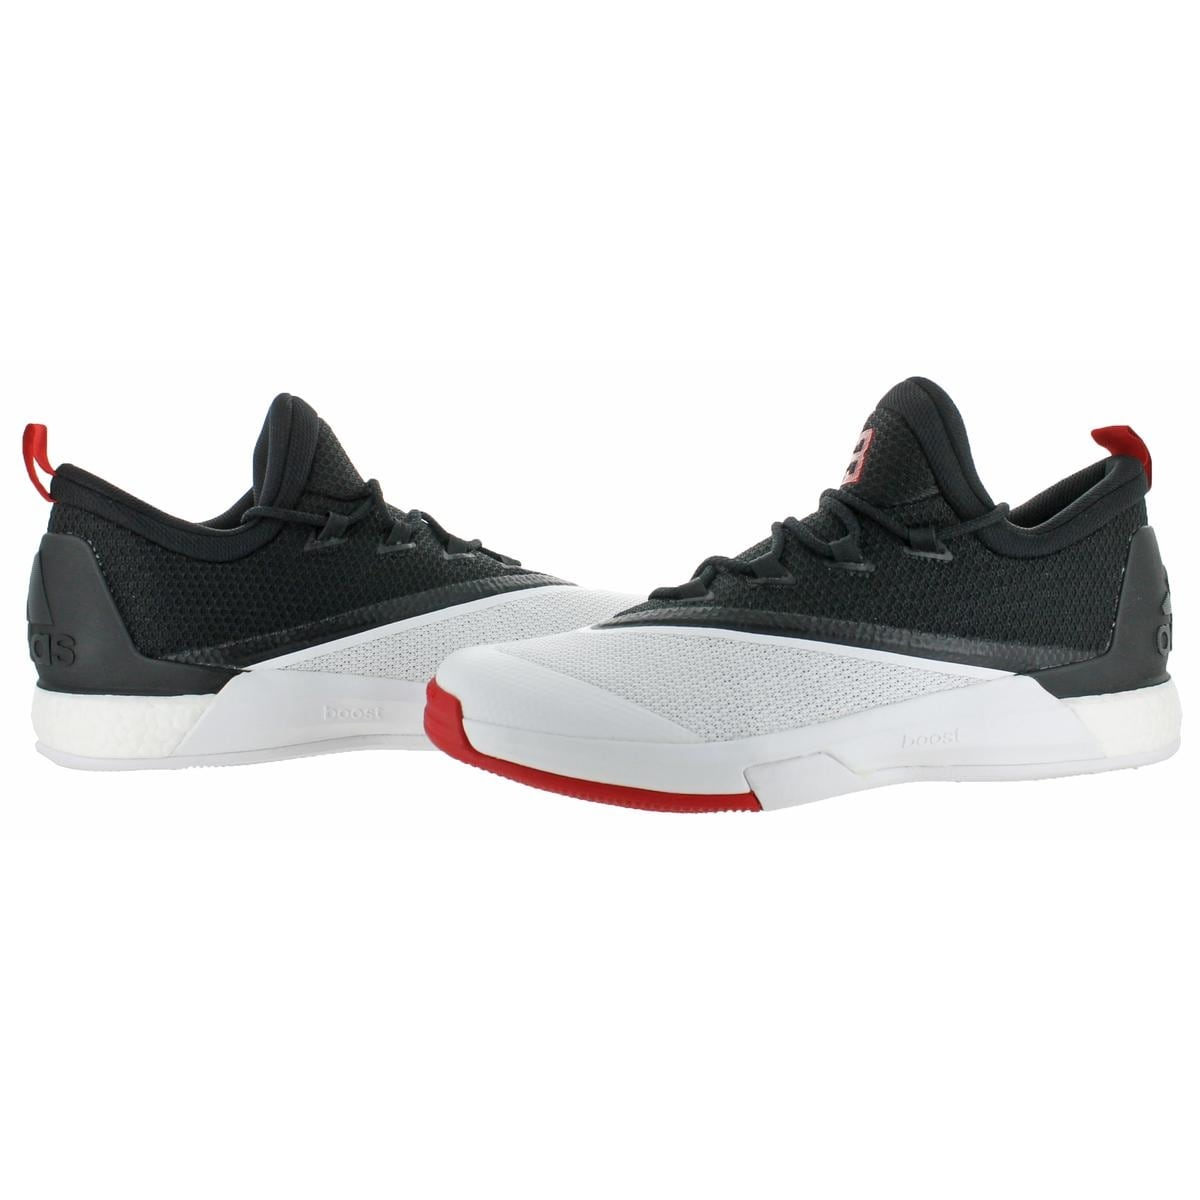 fa695b6234b6 Shop Adidas Mens Harden Crazylight Boost 2.5 Basketball Shoes Mid Top  Stable Frame - 10.5 medium (d) - Ships To Canada - Overstock - 22612808